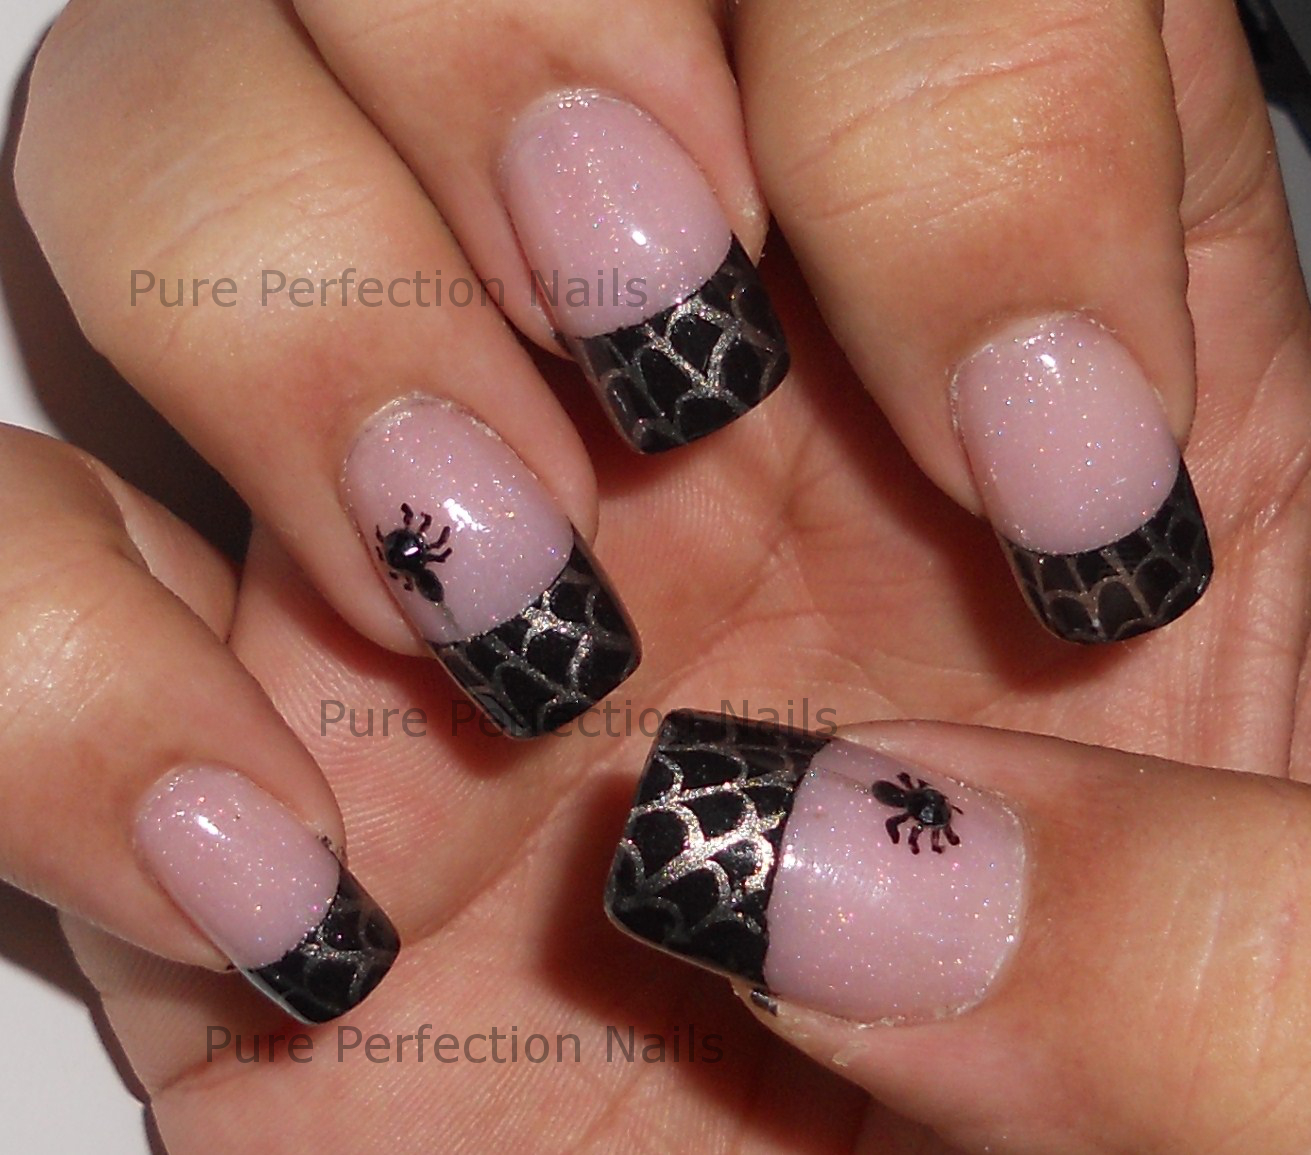 Pure Perfection Nails: Spider Web French Stamping Nail Art